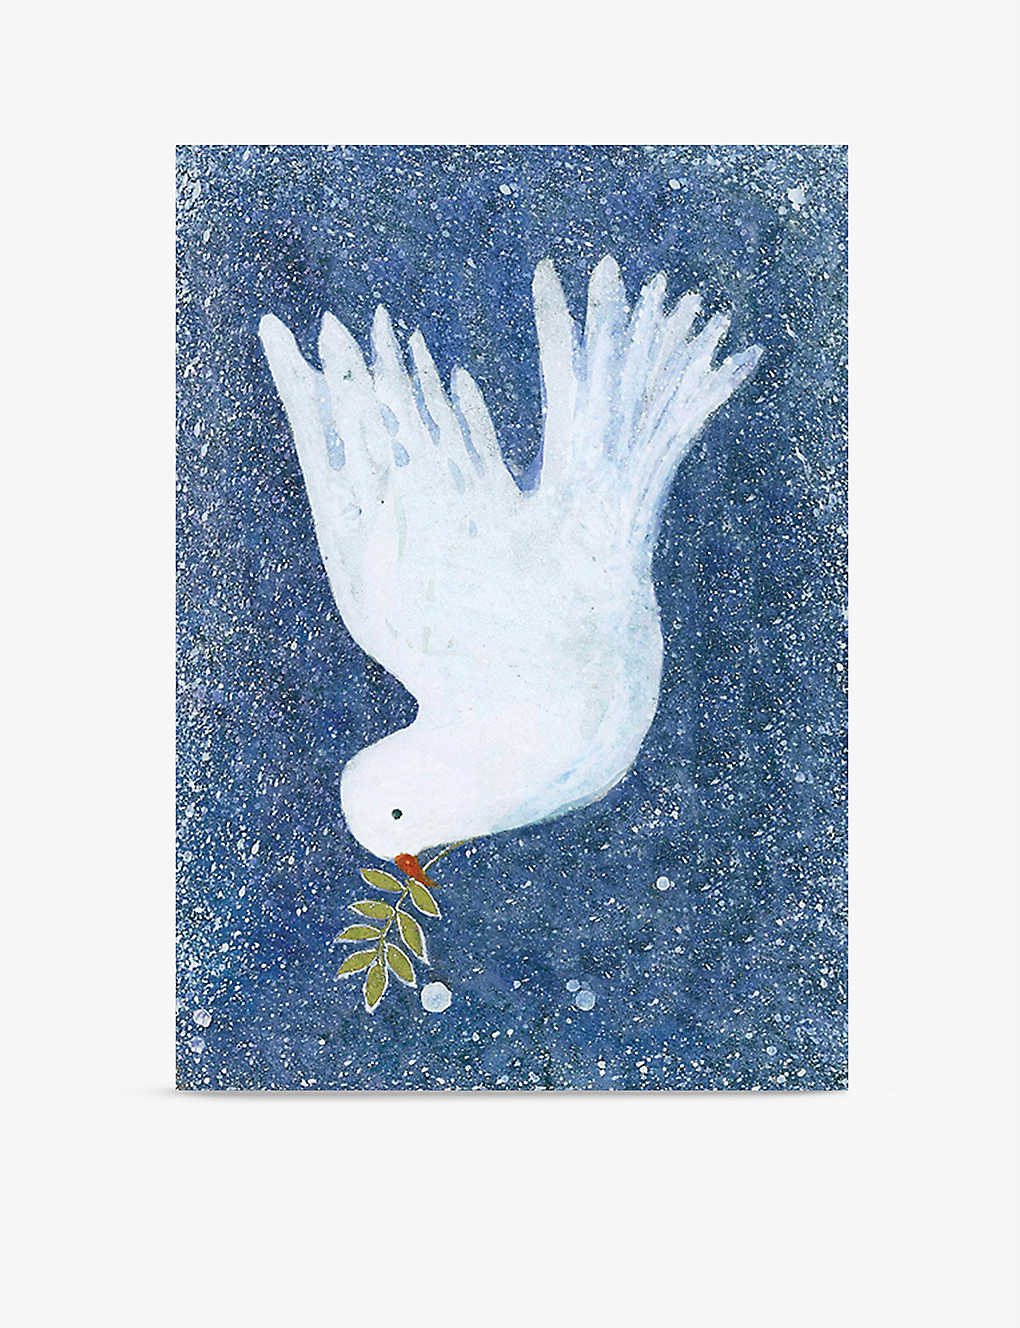 MUSEUMS AND GALLERIES: Pack of 8 Dove with mistletoe greetings card 12.3cm x 12.3cm